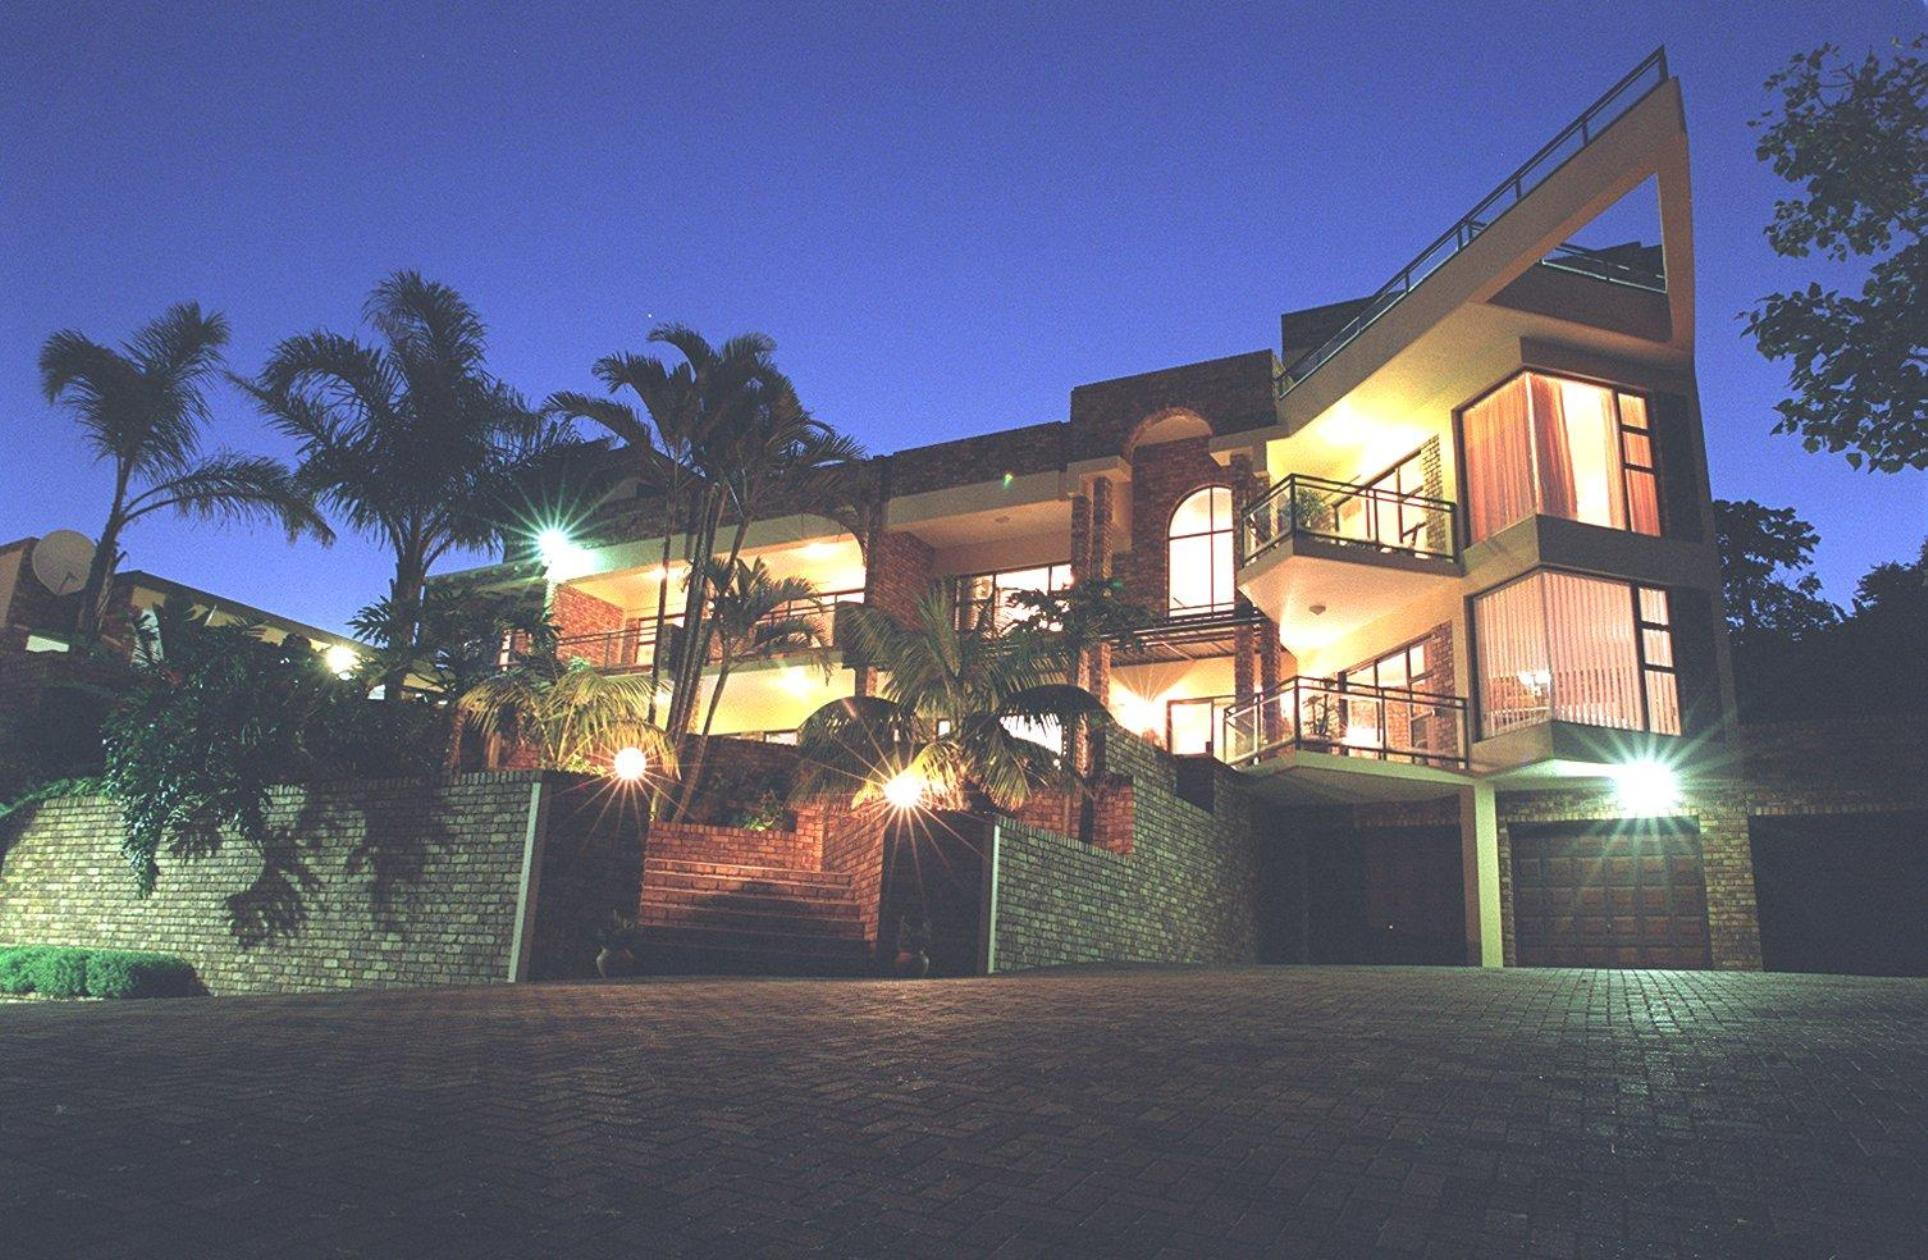 House At Night L